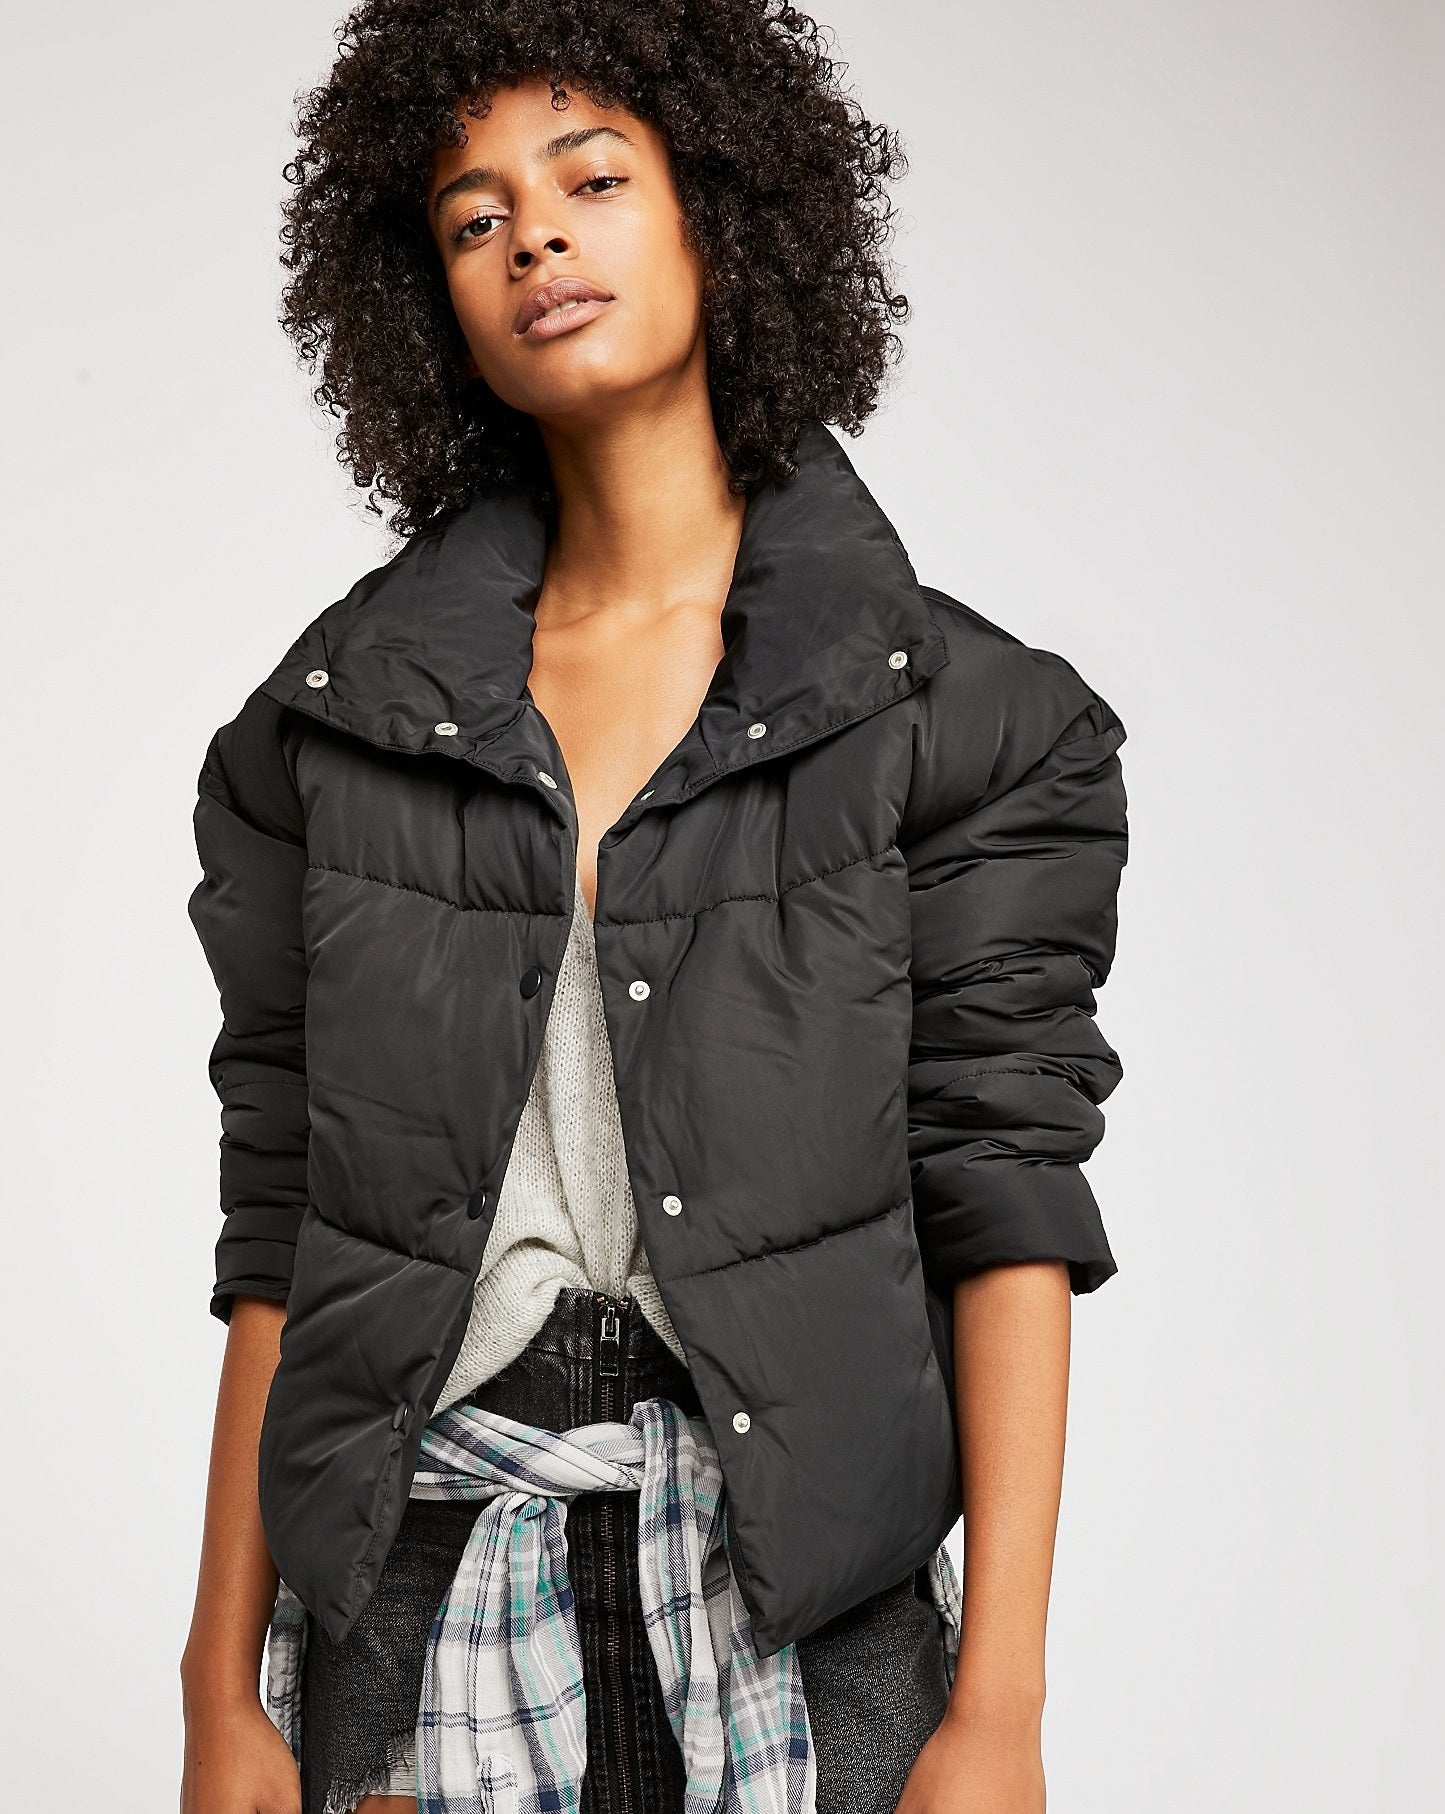 a person wearing the puffer jacket